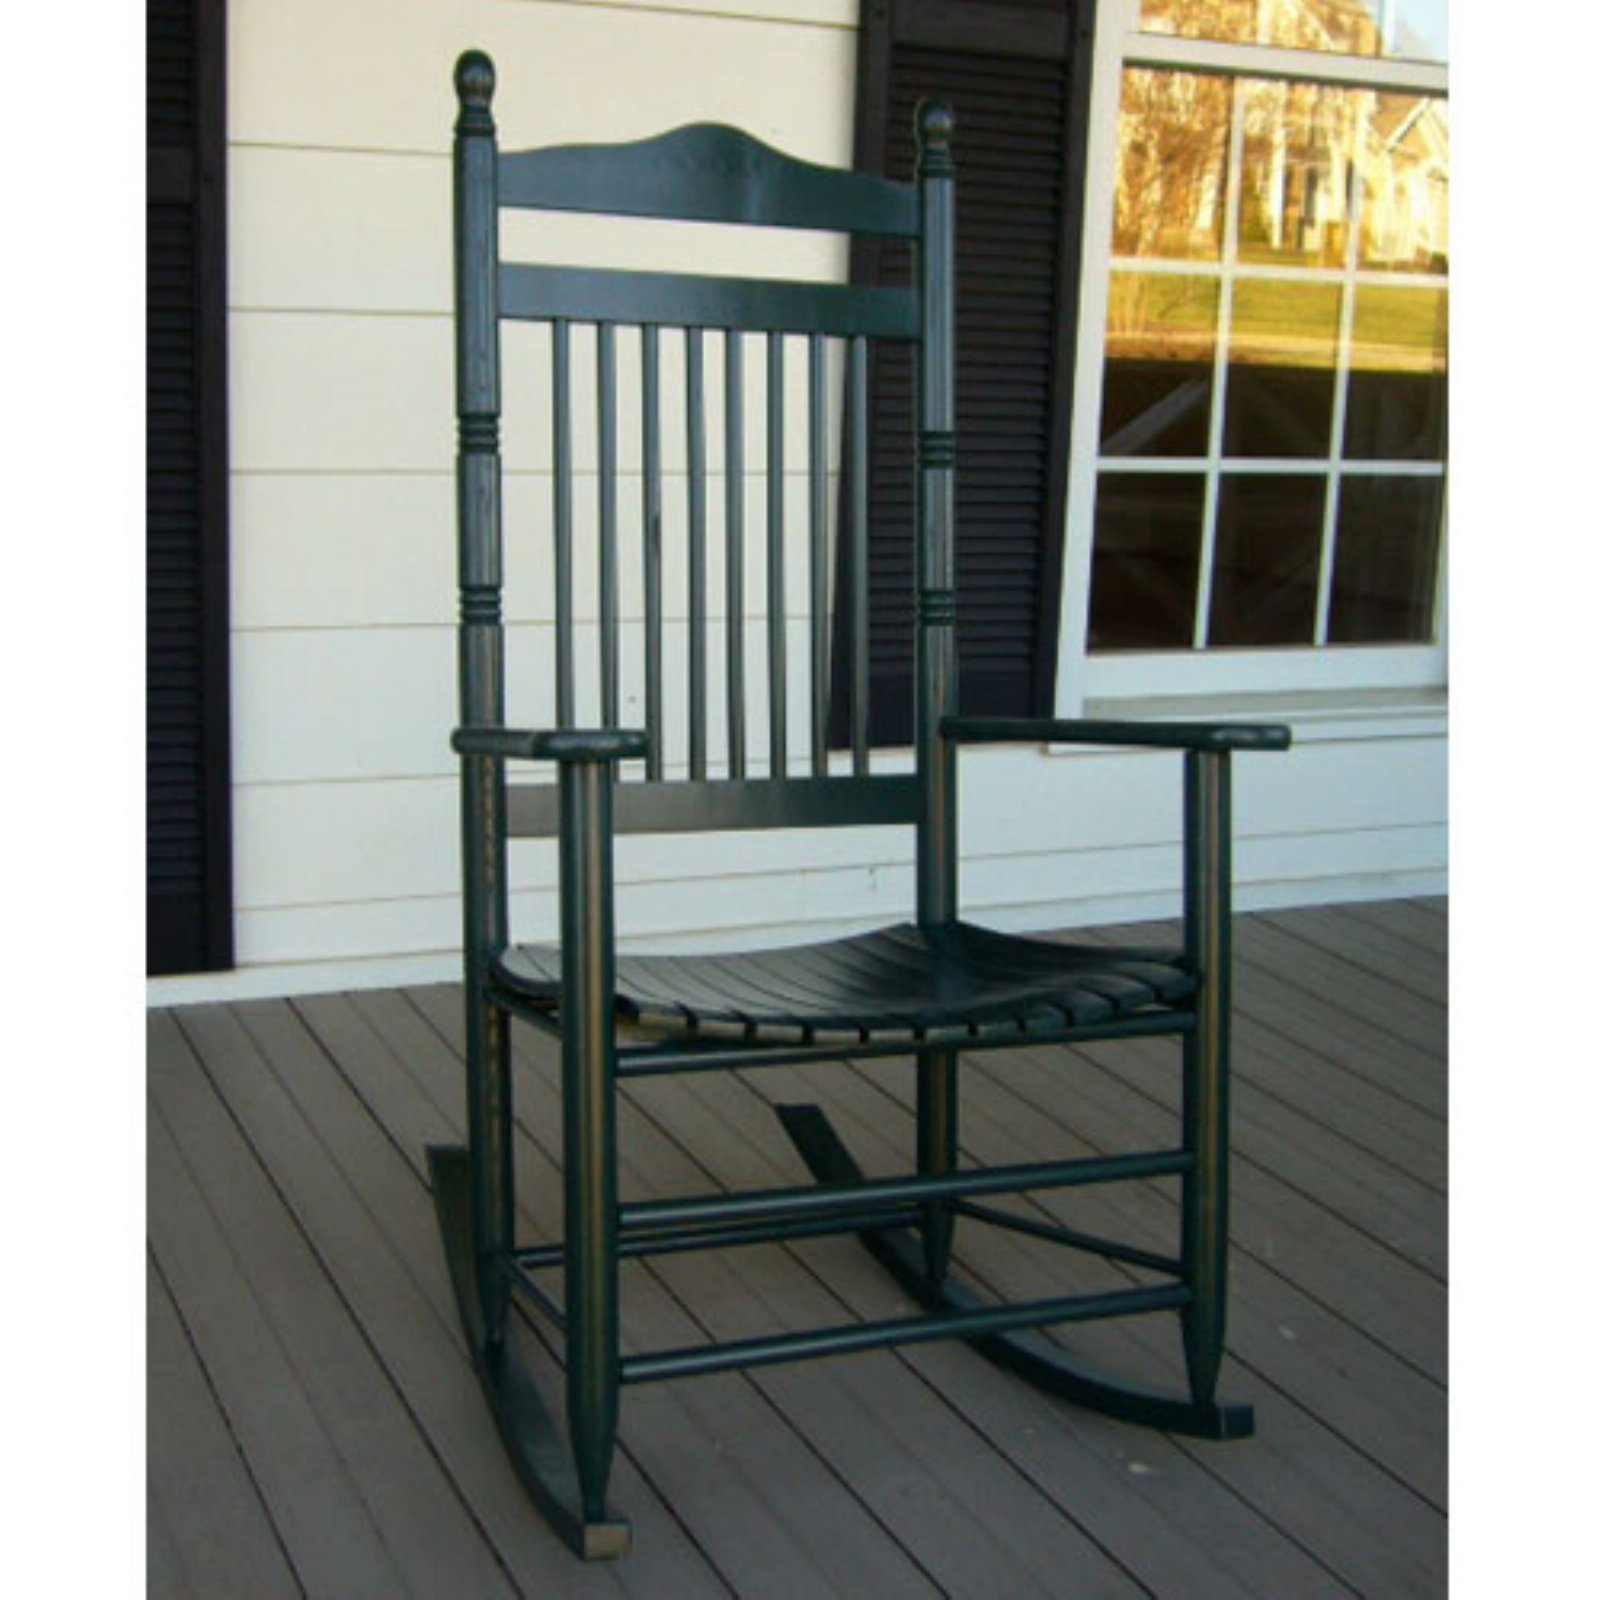 Dixie Seating Calabash Indoor/Outdoor Spindle Ready-To-Assemble Rocking Chair